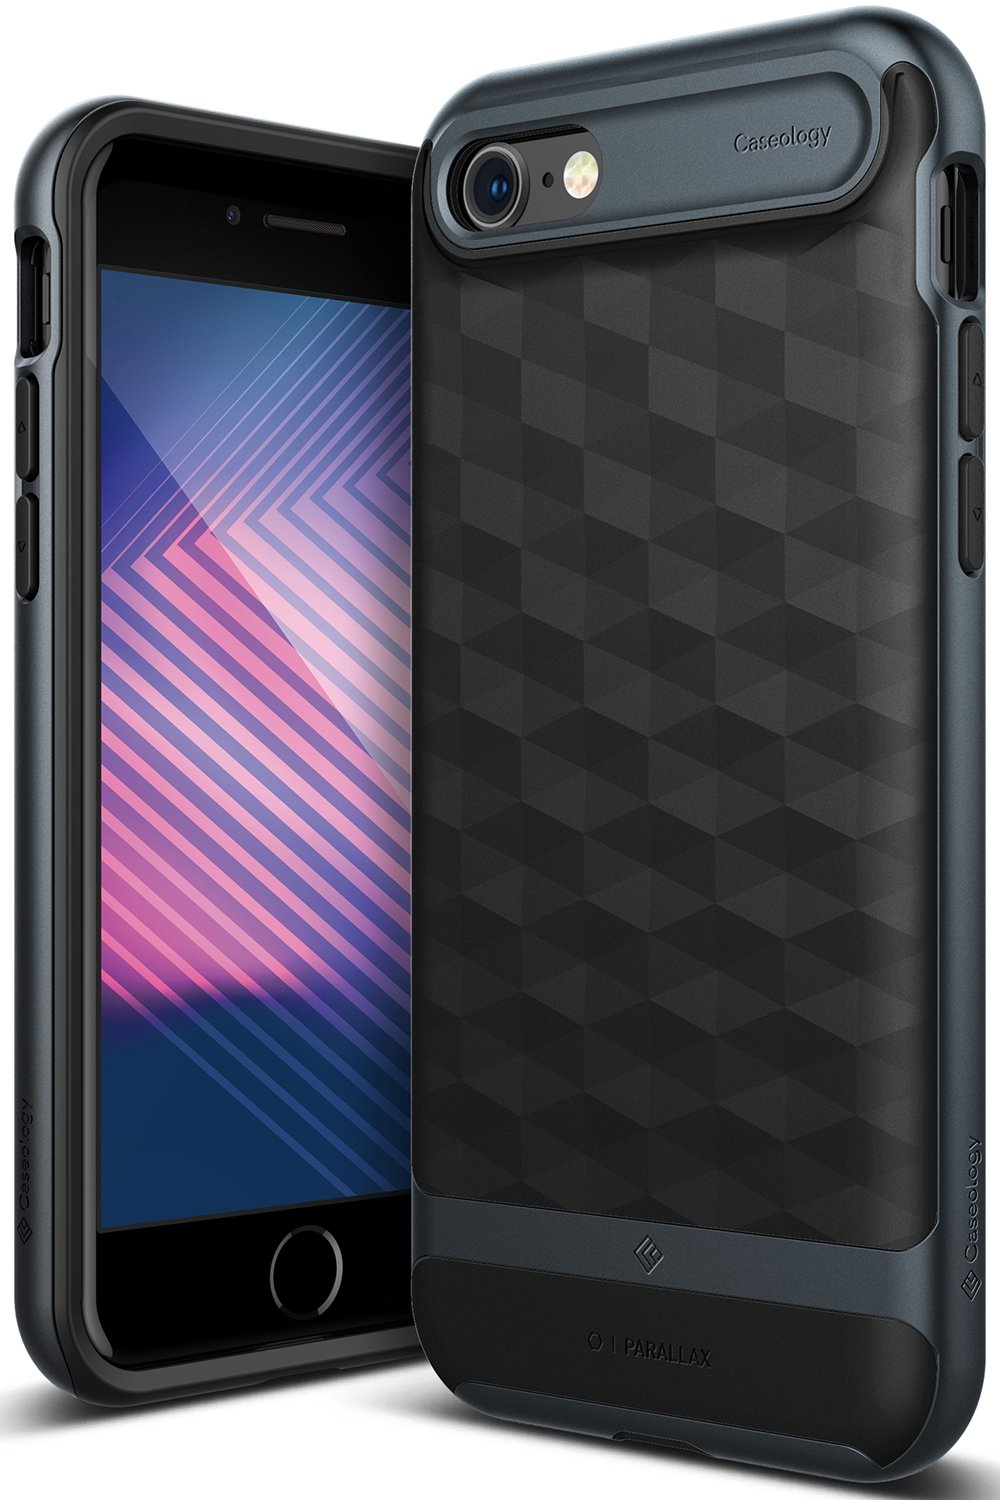 online store 73d13 db238 Caseology Parallax for Apple iPhone 8 Case (2017) / for iPhone 7 Case  (2016) - Award Winning Design - Black/Deep Blue